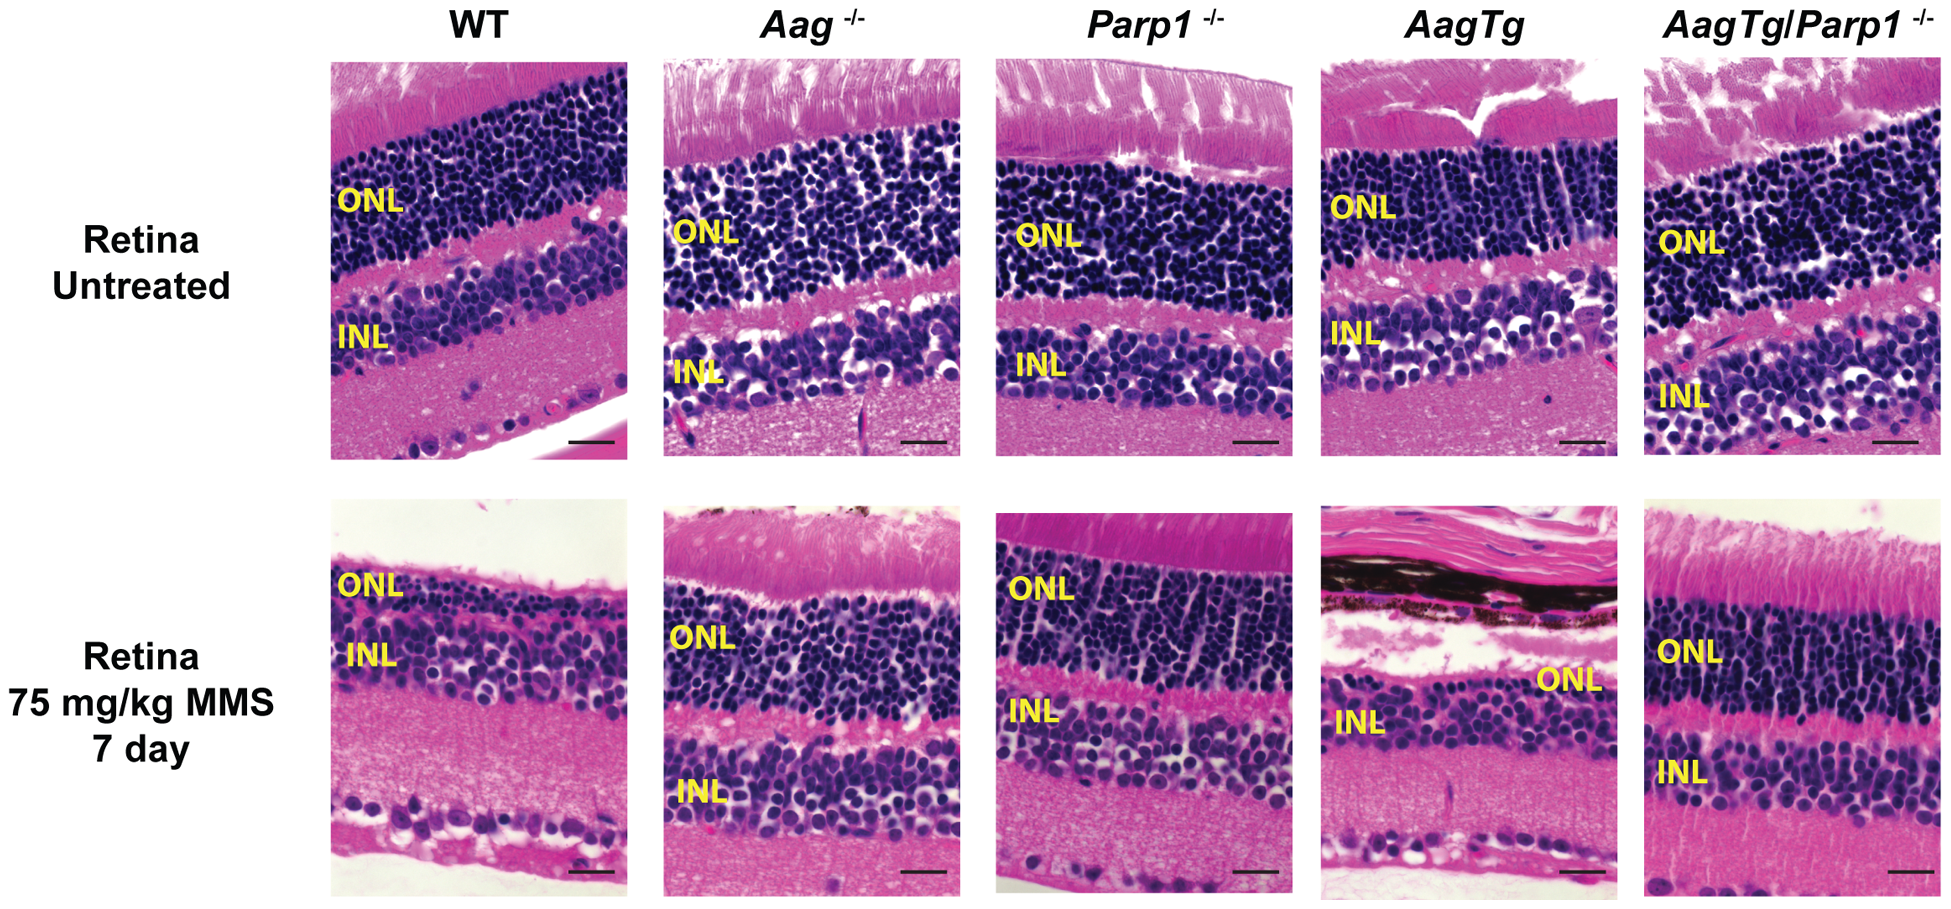 Parp1 deficiency protects against Aag-dependent, MMS-induced toxicity in retina photoreceptors.